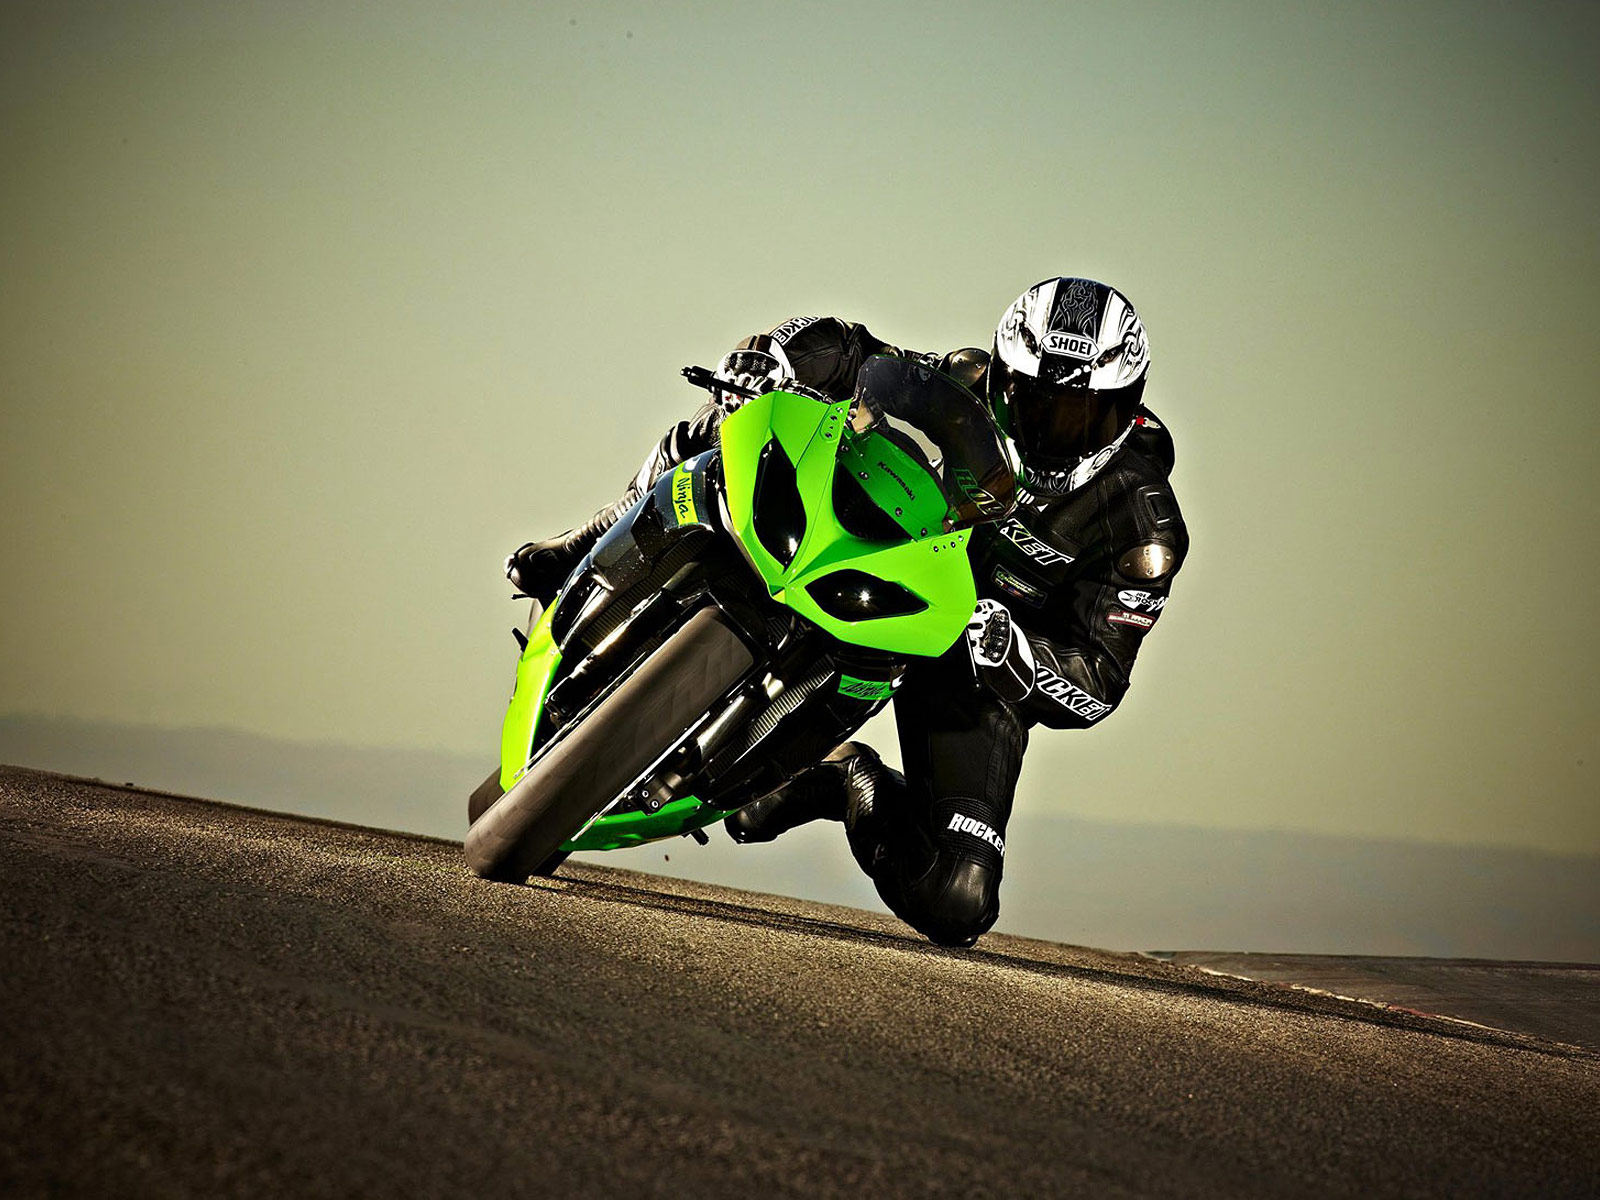 Cool Kawasaki Wallpaper